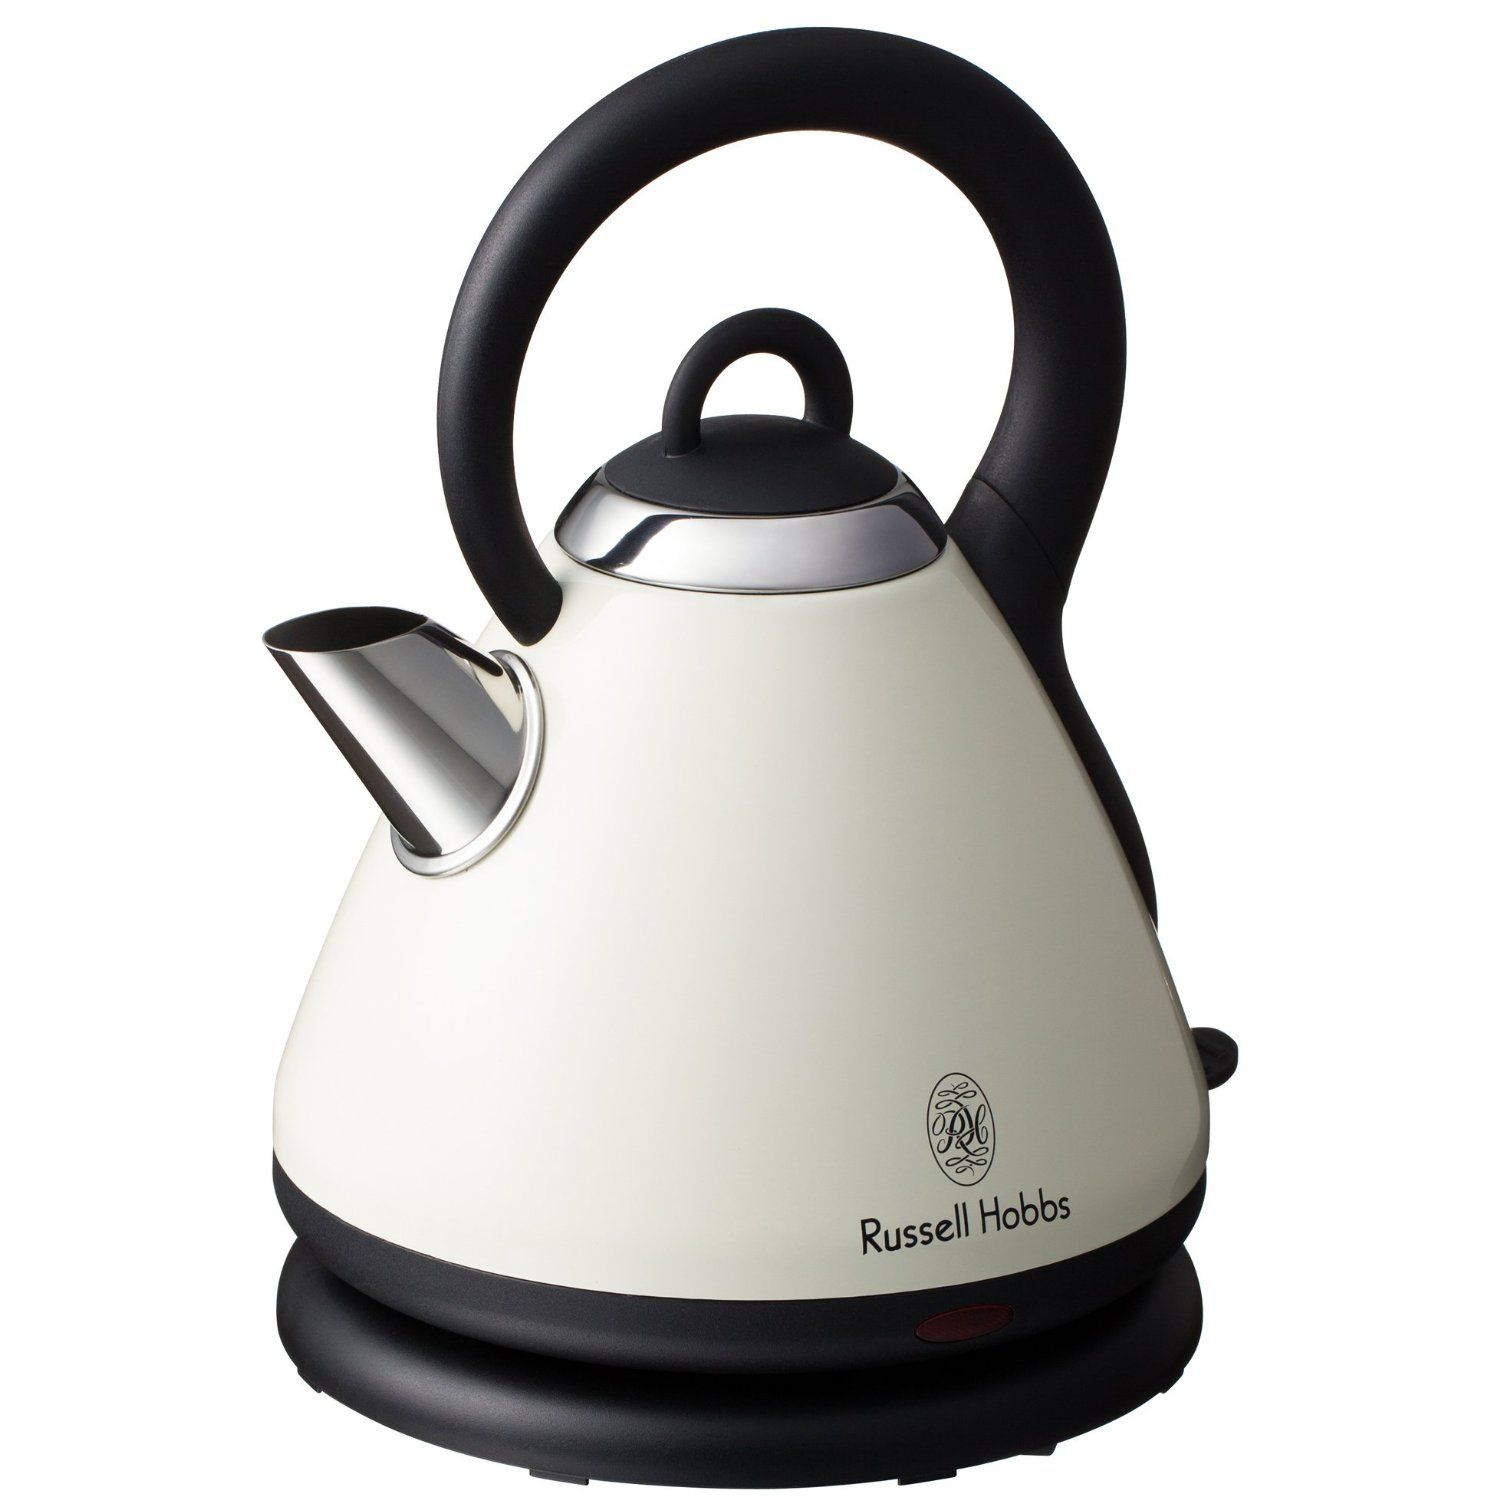 bargain russell hobbs 18256 heritage kettle now a 20 at amazon